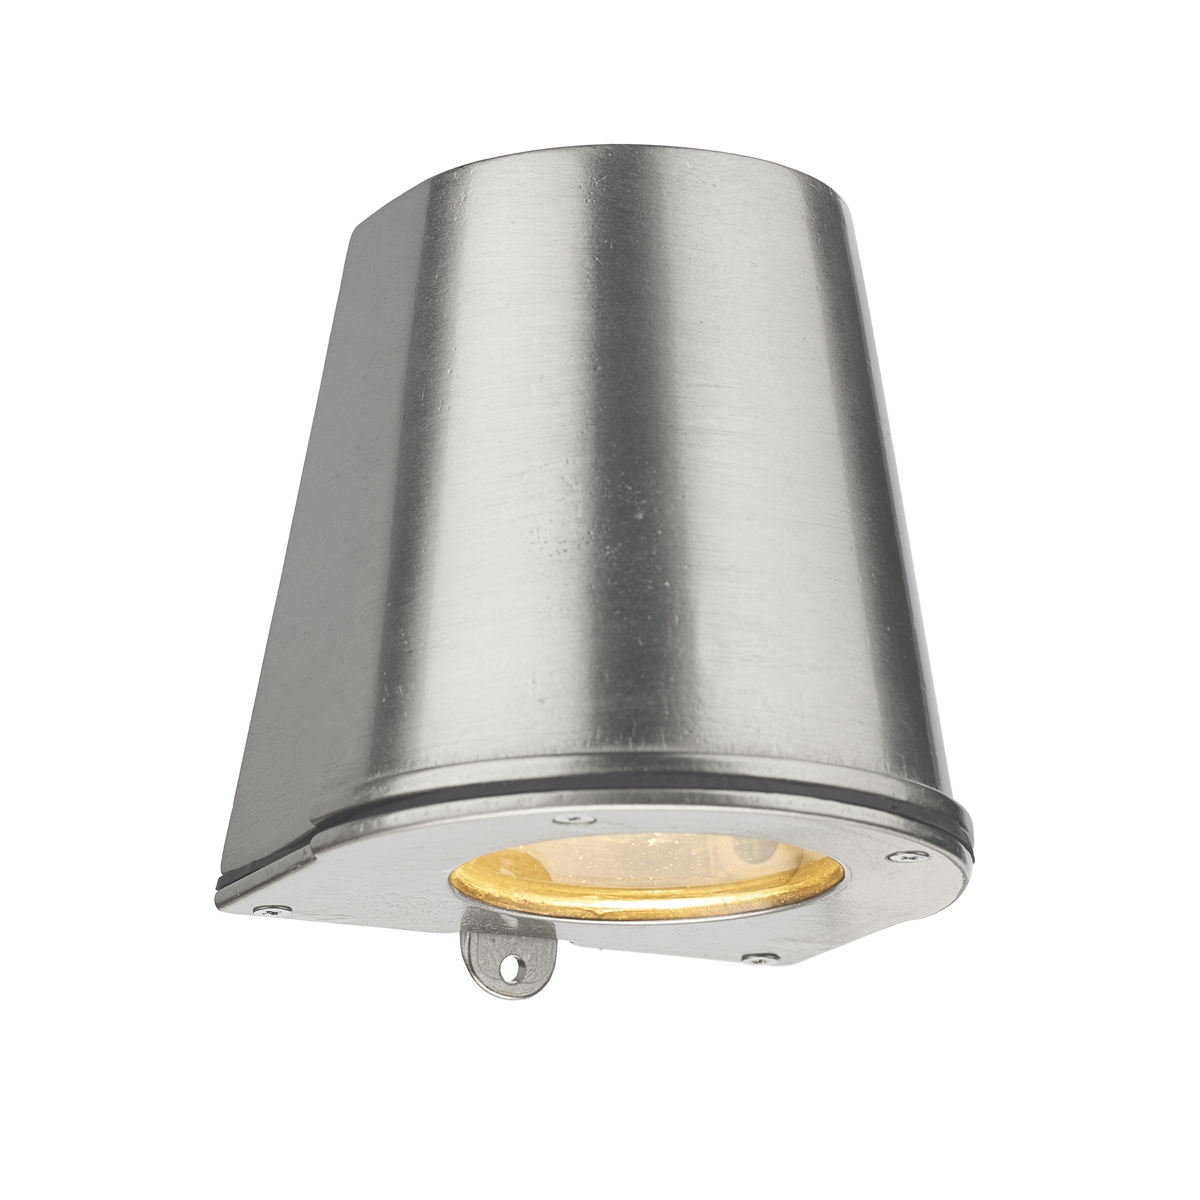 Strait Solid Brass IP44 Wall Light in Nickel